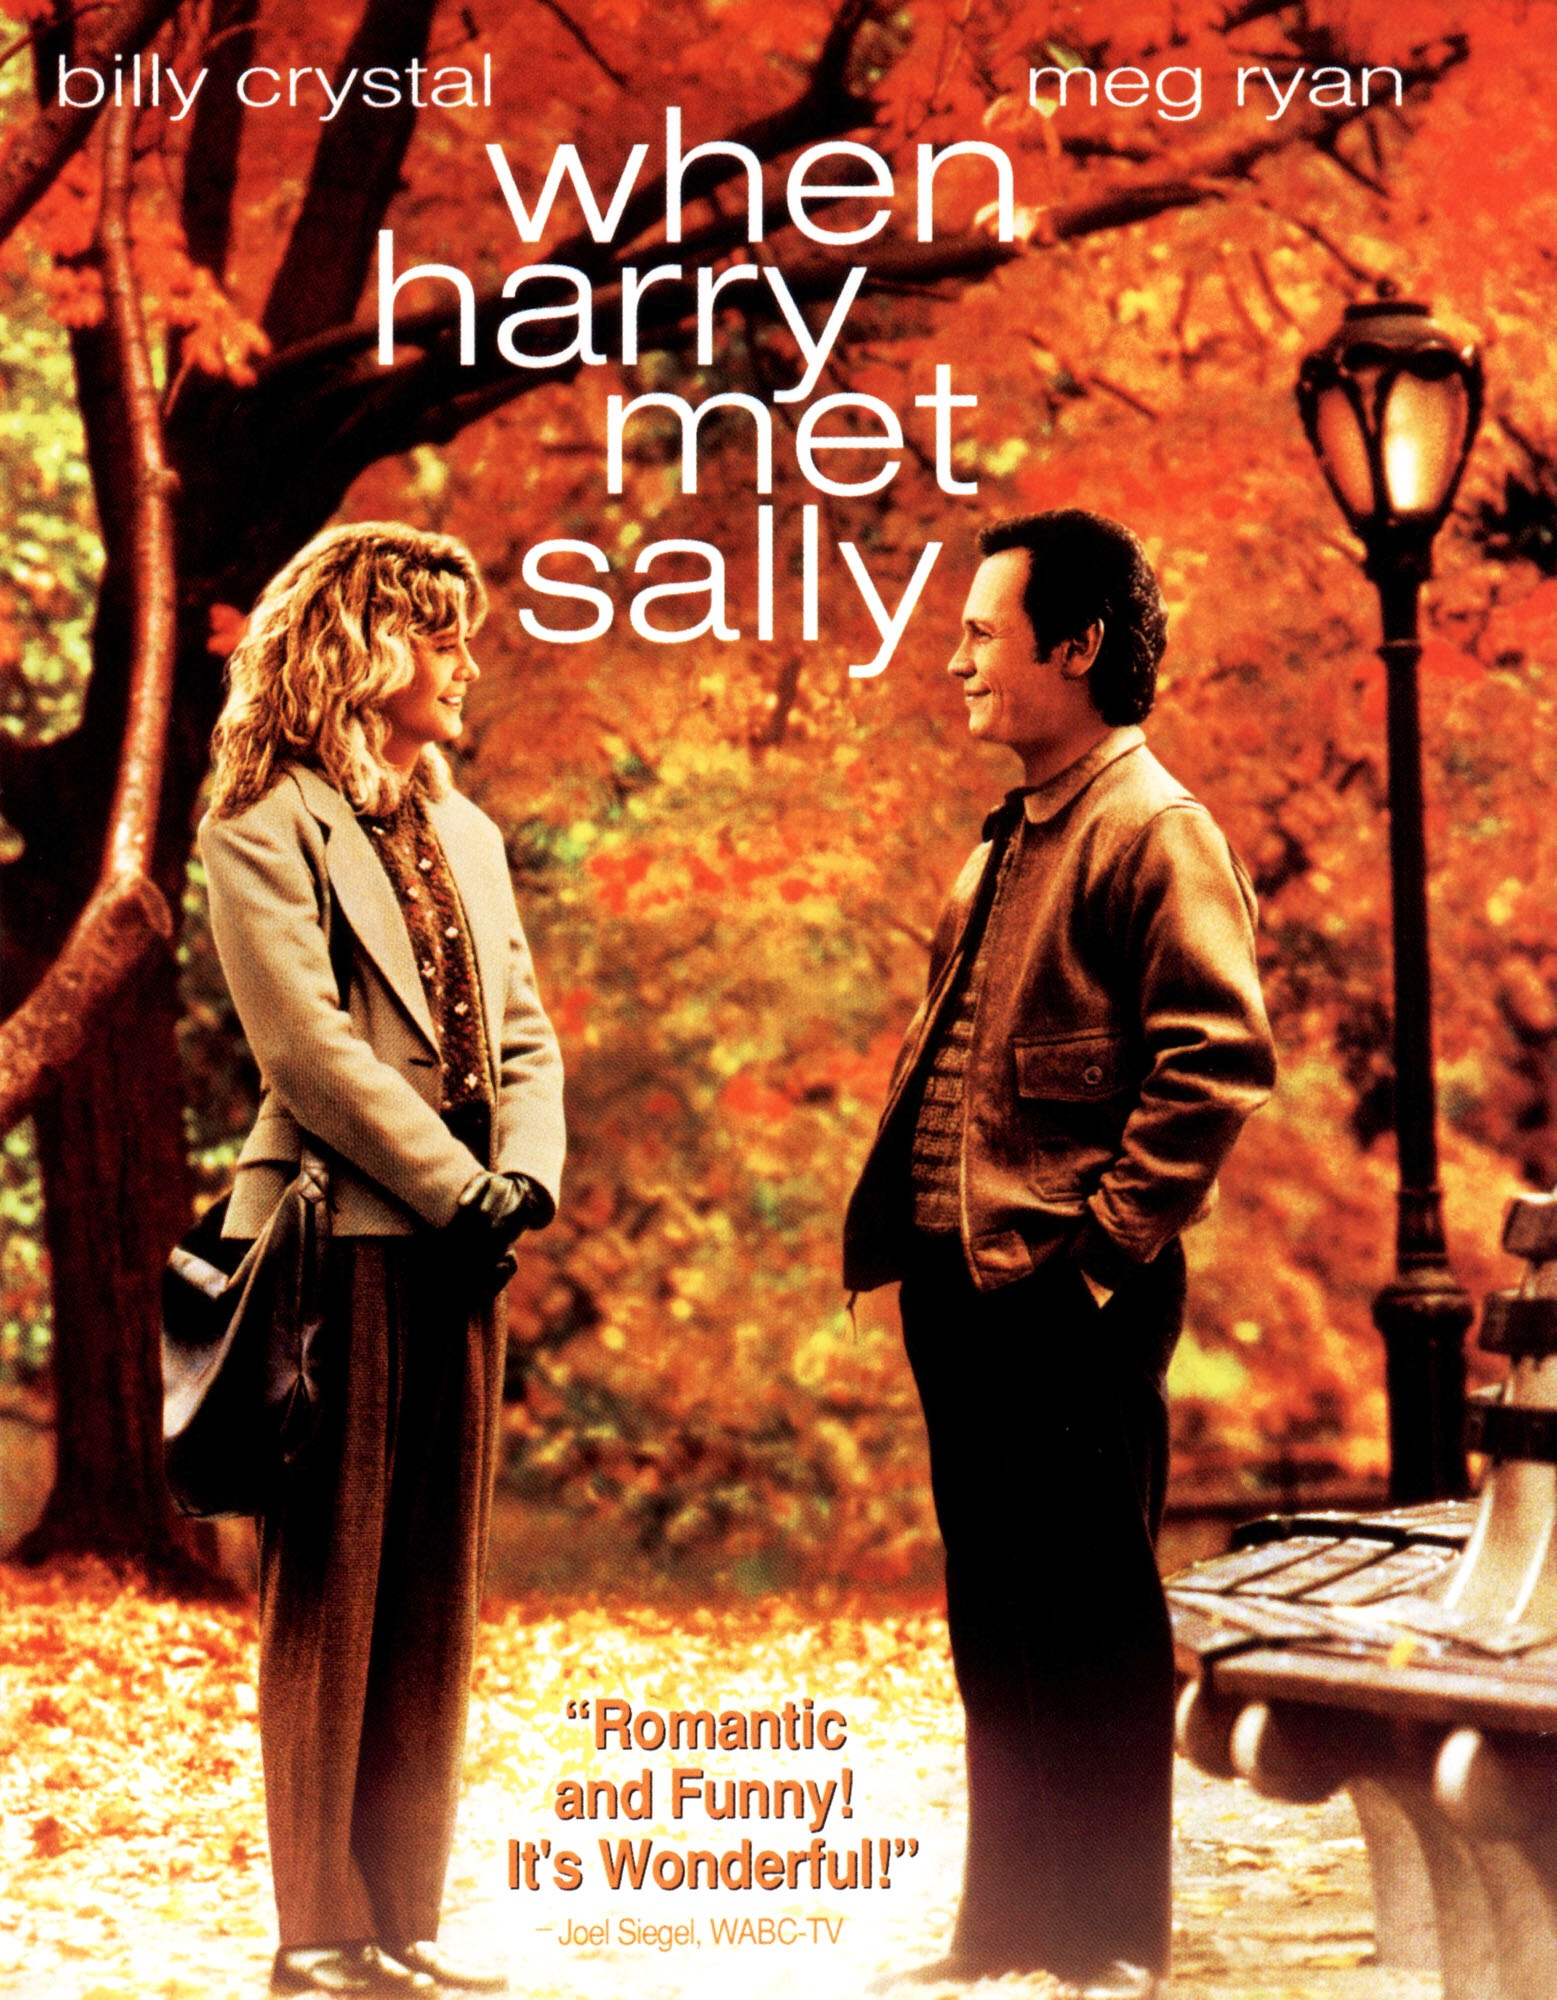 The poster for When Harry Met Sally with Ryan and Crystal looking at each other in Central Park